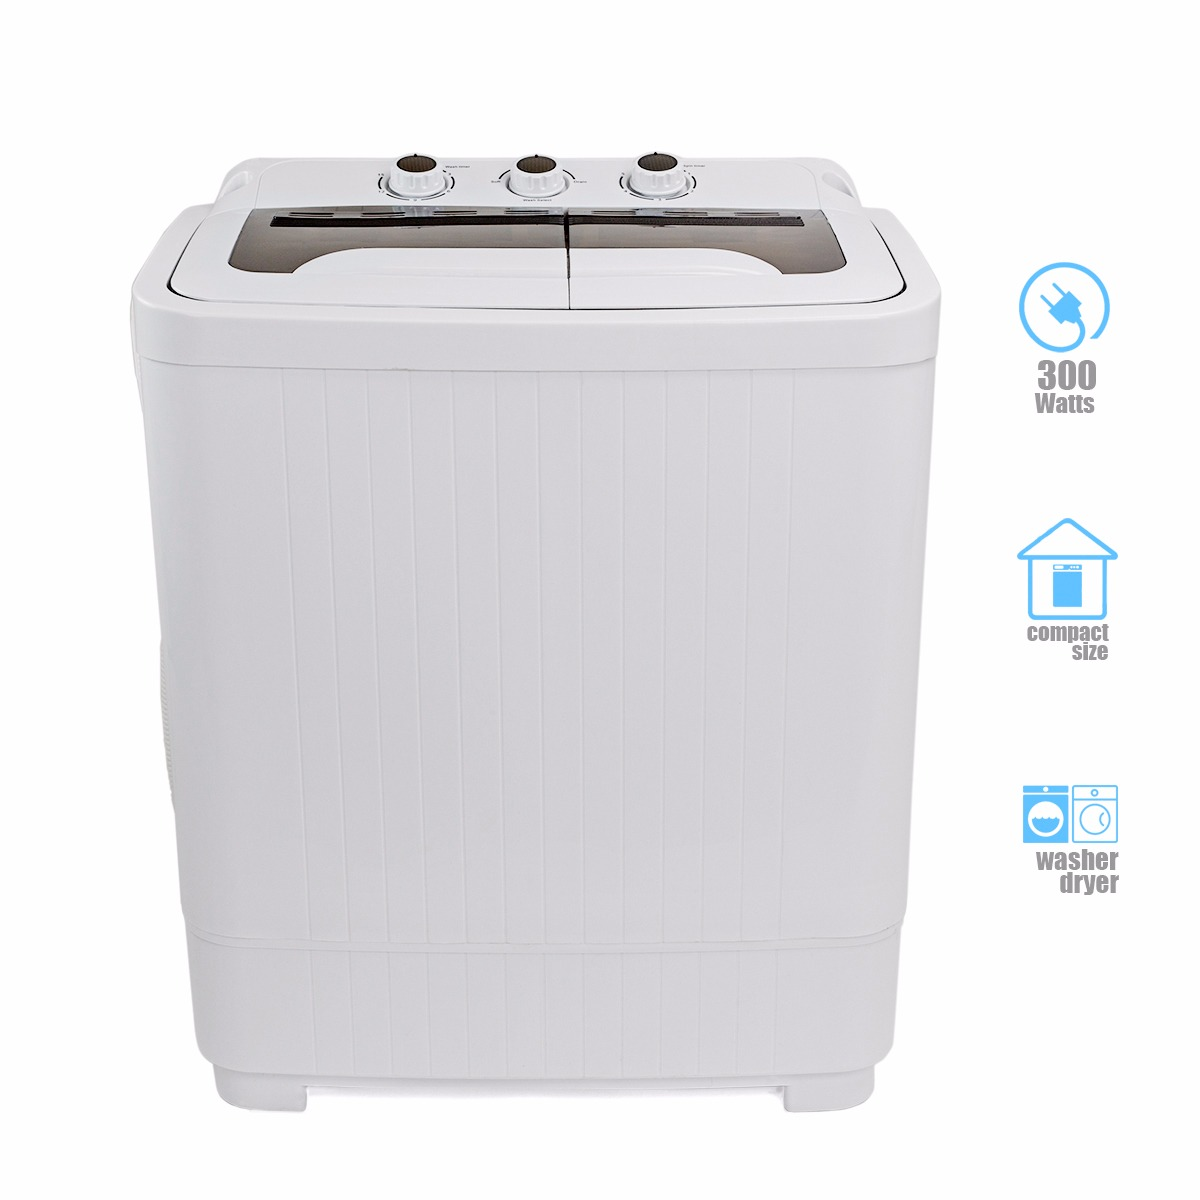 Mini Washer Spin Dryer Portable Compact Laundry Combo Rv